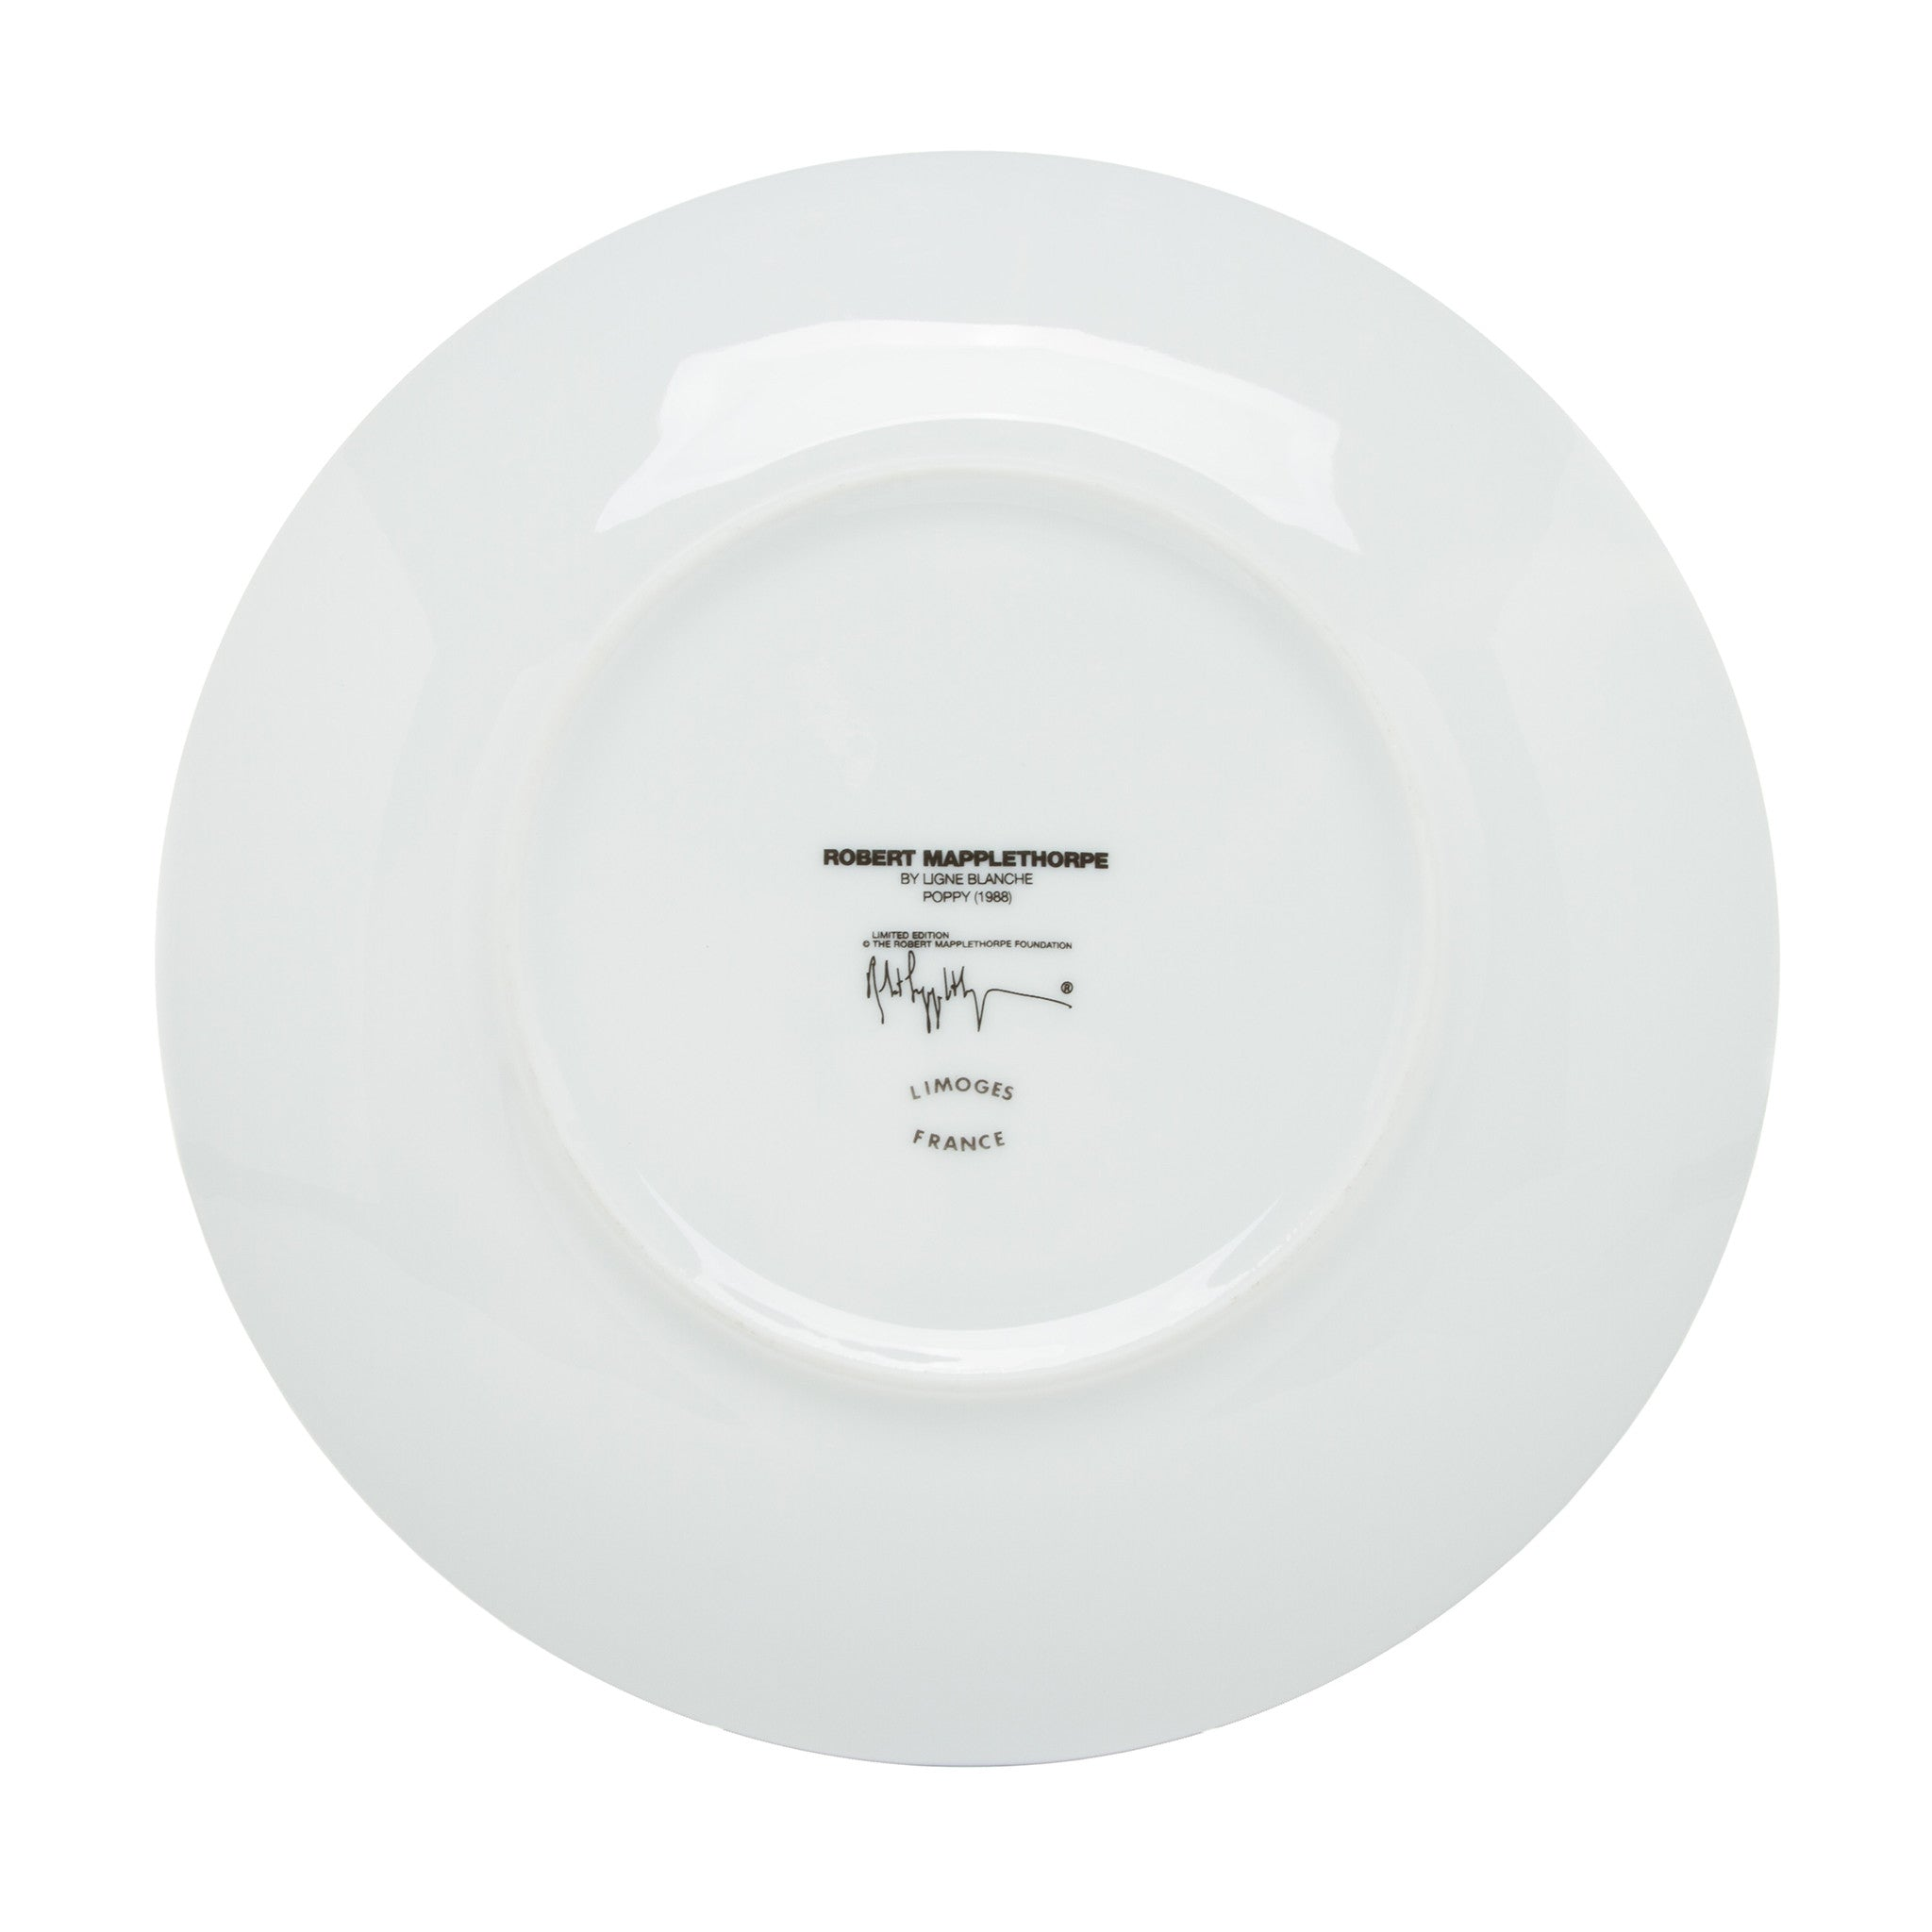 Limoges Porcelain Dinner Plate - Poppy by Robert Mapplethorpe  sc 1 st  The Getty Store & Limoges Porcelain Dinner Plate - Poppy by Robert Mapplethorpe \u2013 The ...